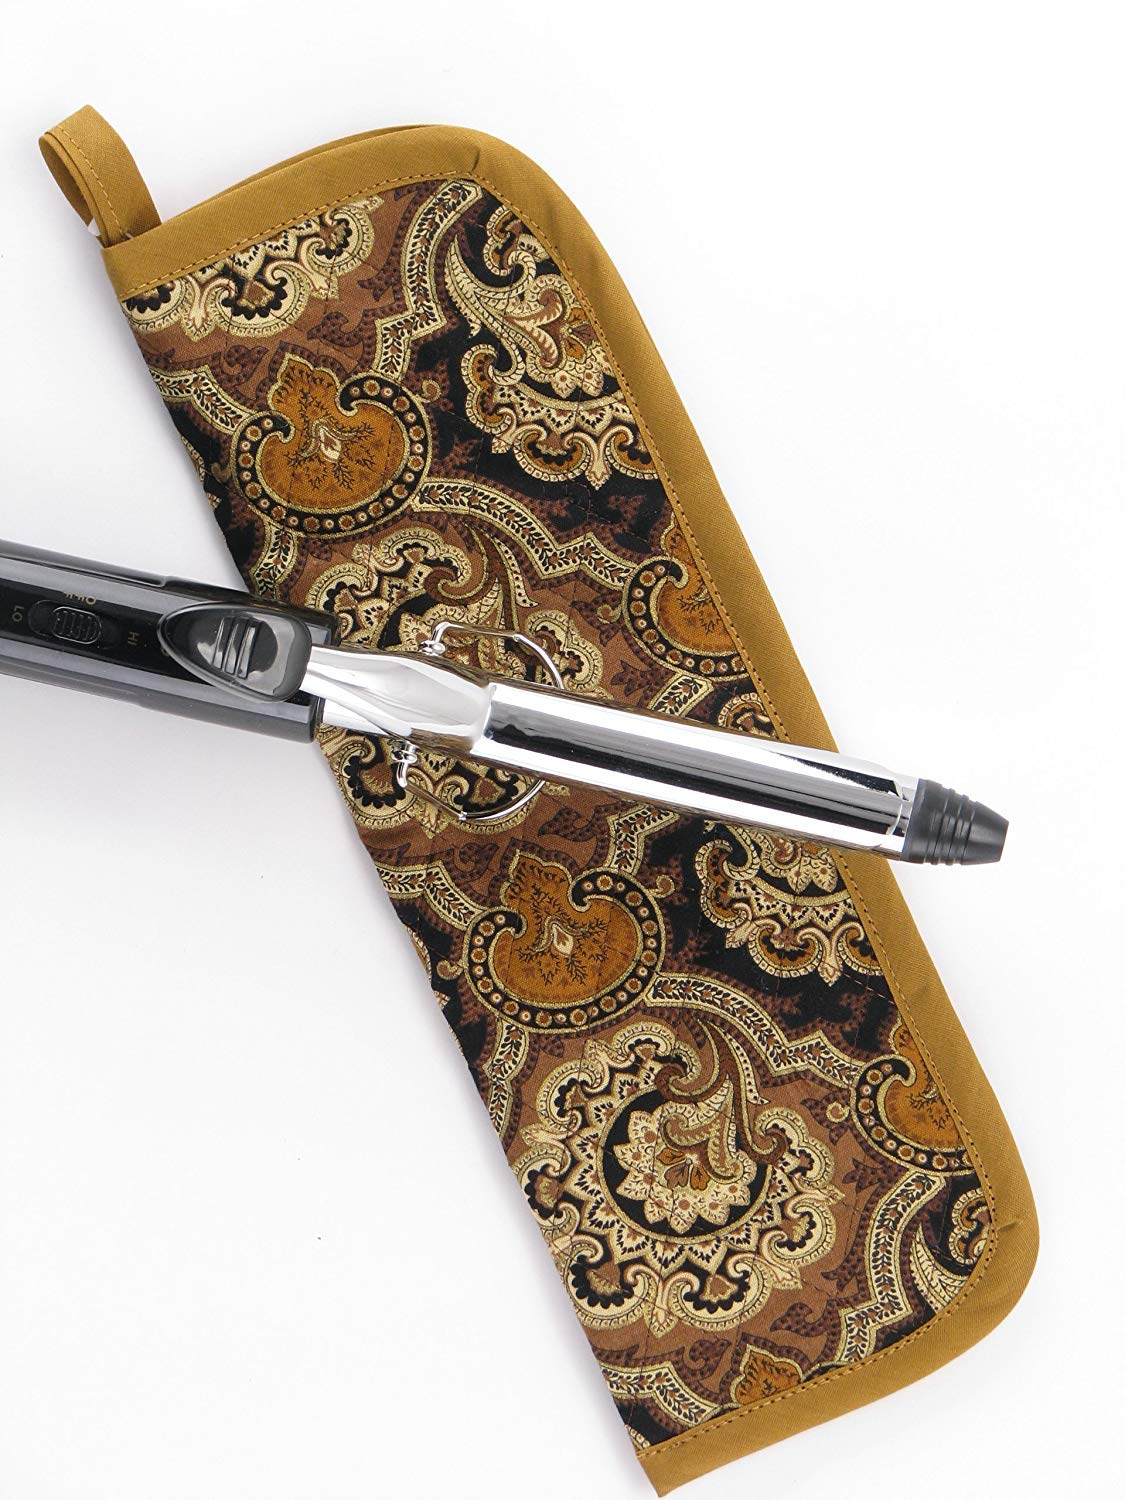 Heat-resistant Curling Iron Cover - Vintage Gold